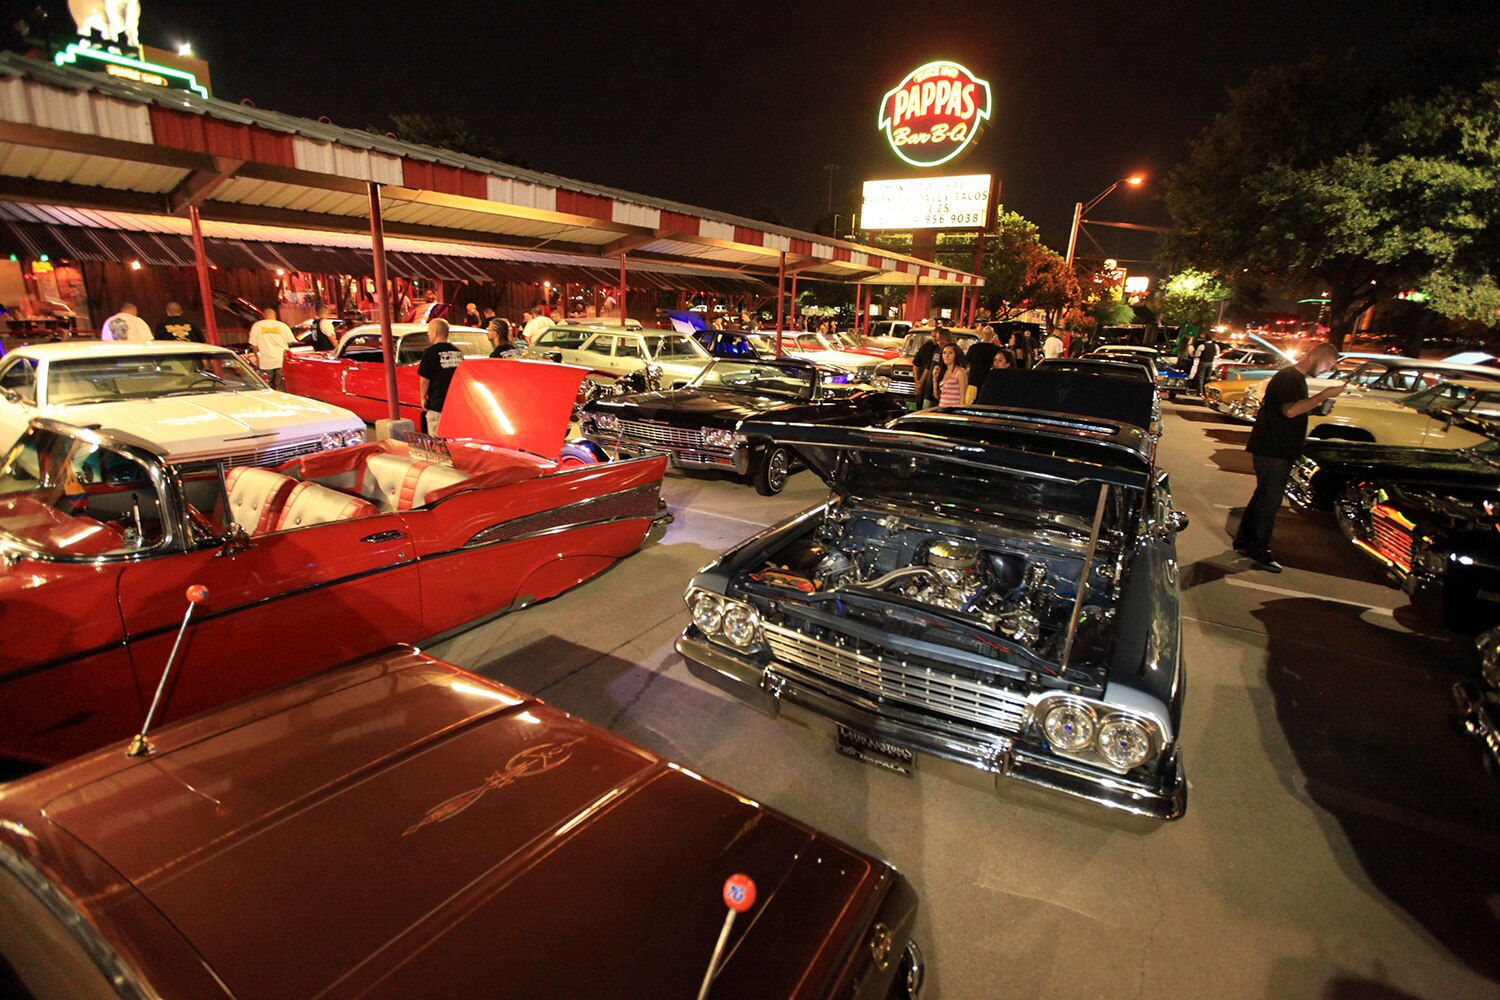 pappas-BBQ-cruise-night-parking-lot-promo